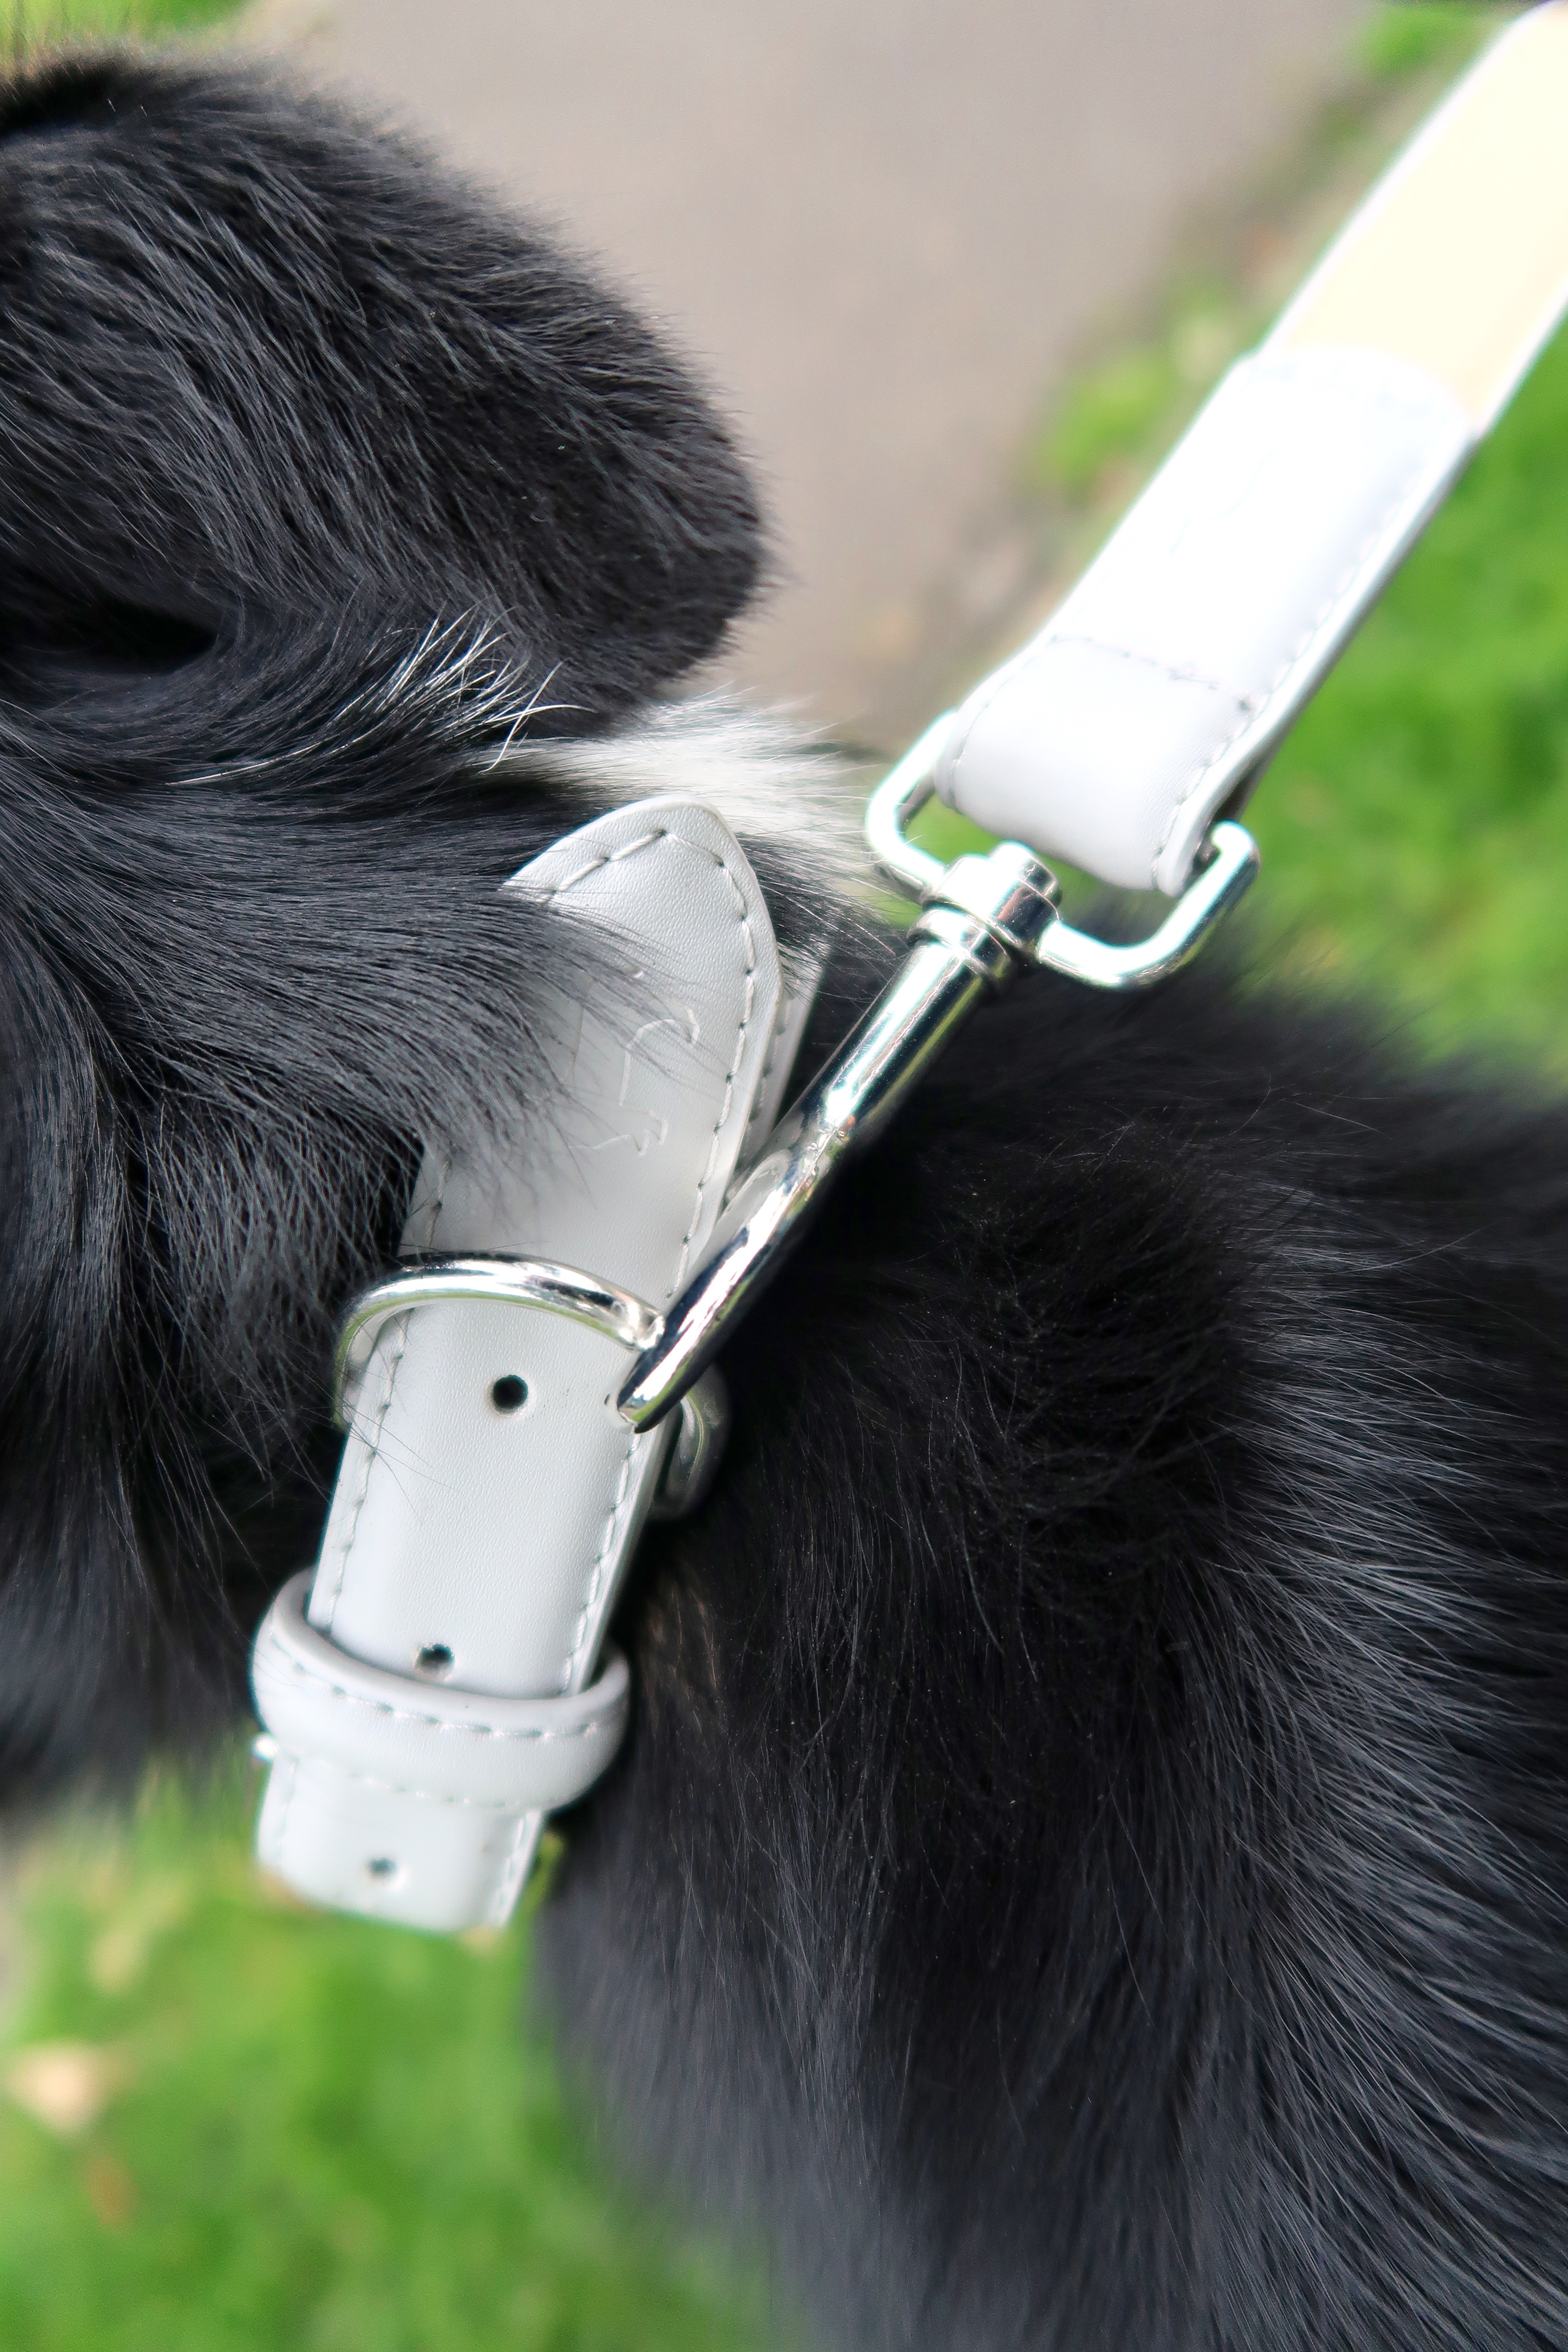 Dog Friendly - Luxury Dog Accessories From Barc London